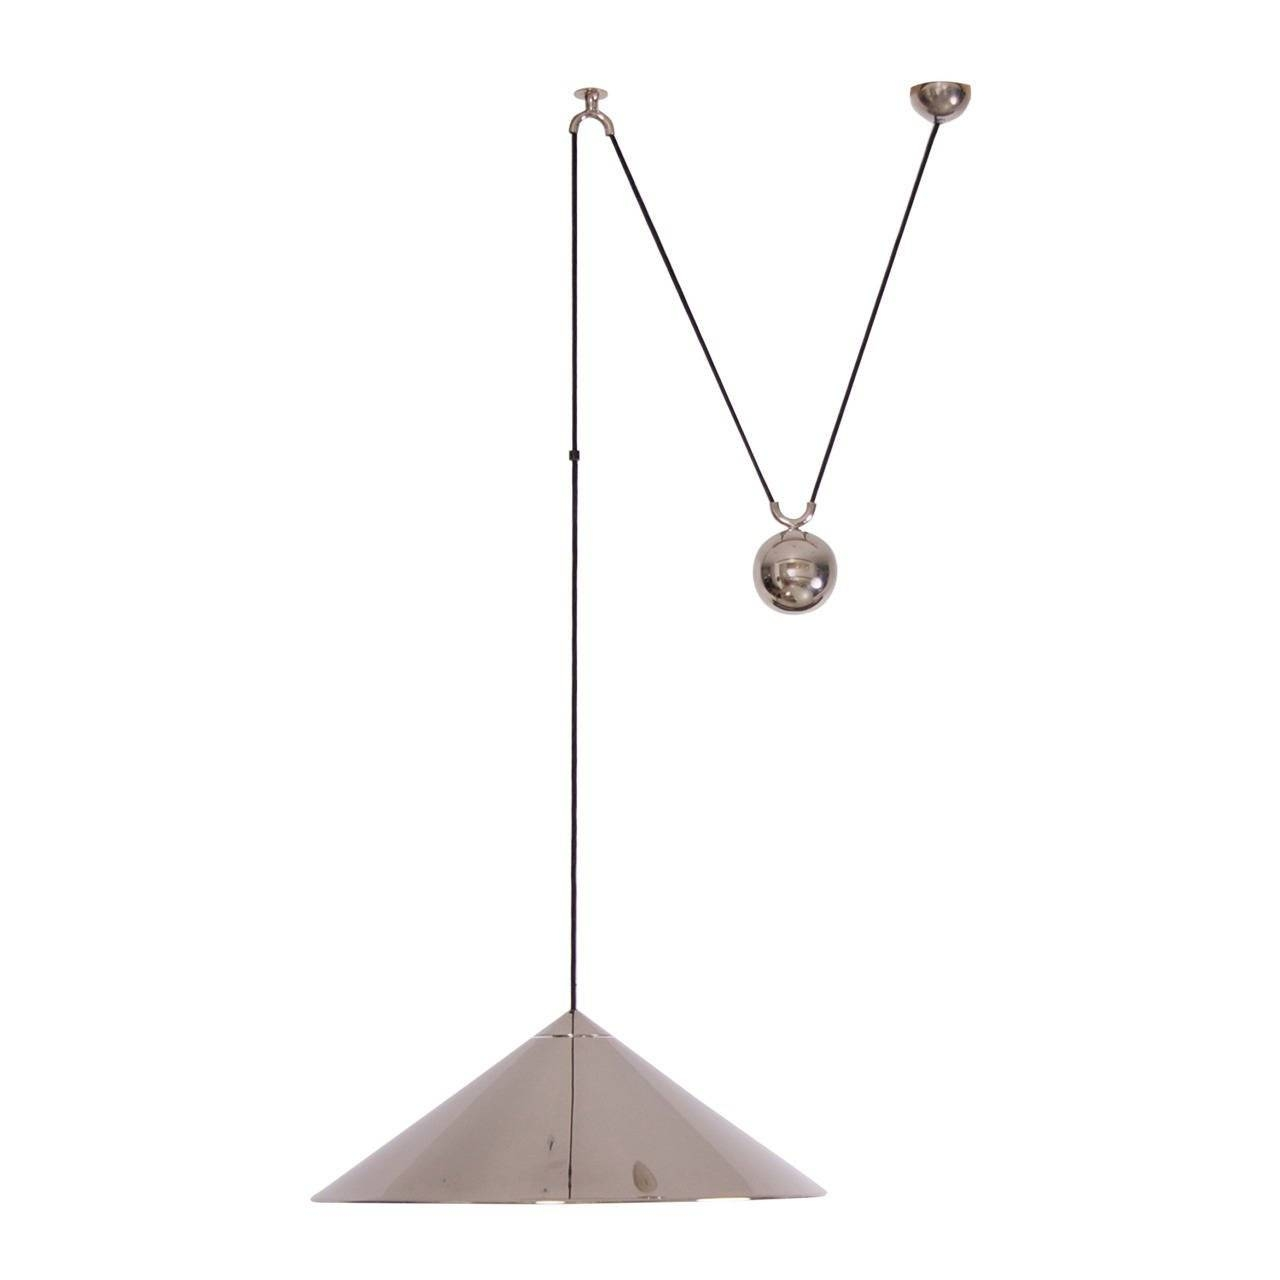 Florian Schulz Keos Extra Large Counterweight Pendant Lamp Nickel Within Counterweight Pendant Lights (View 8 of 15)